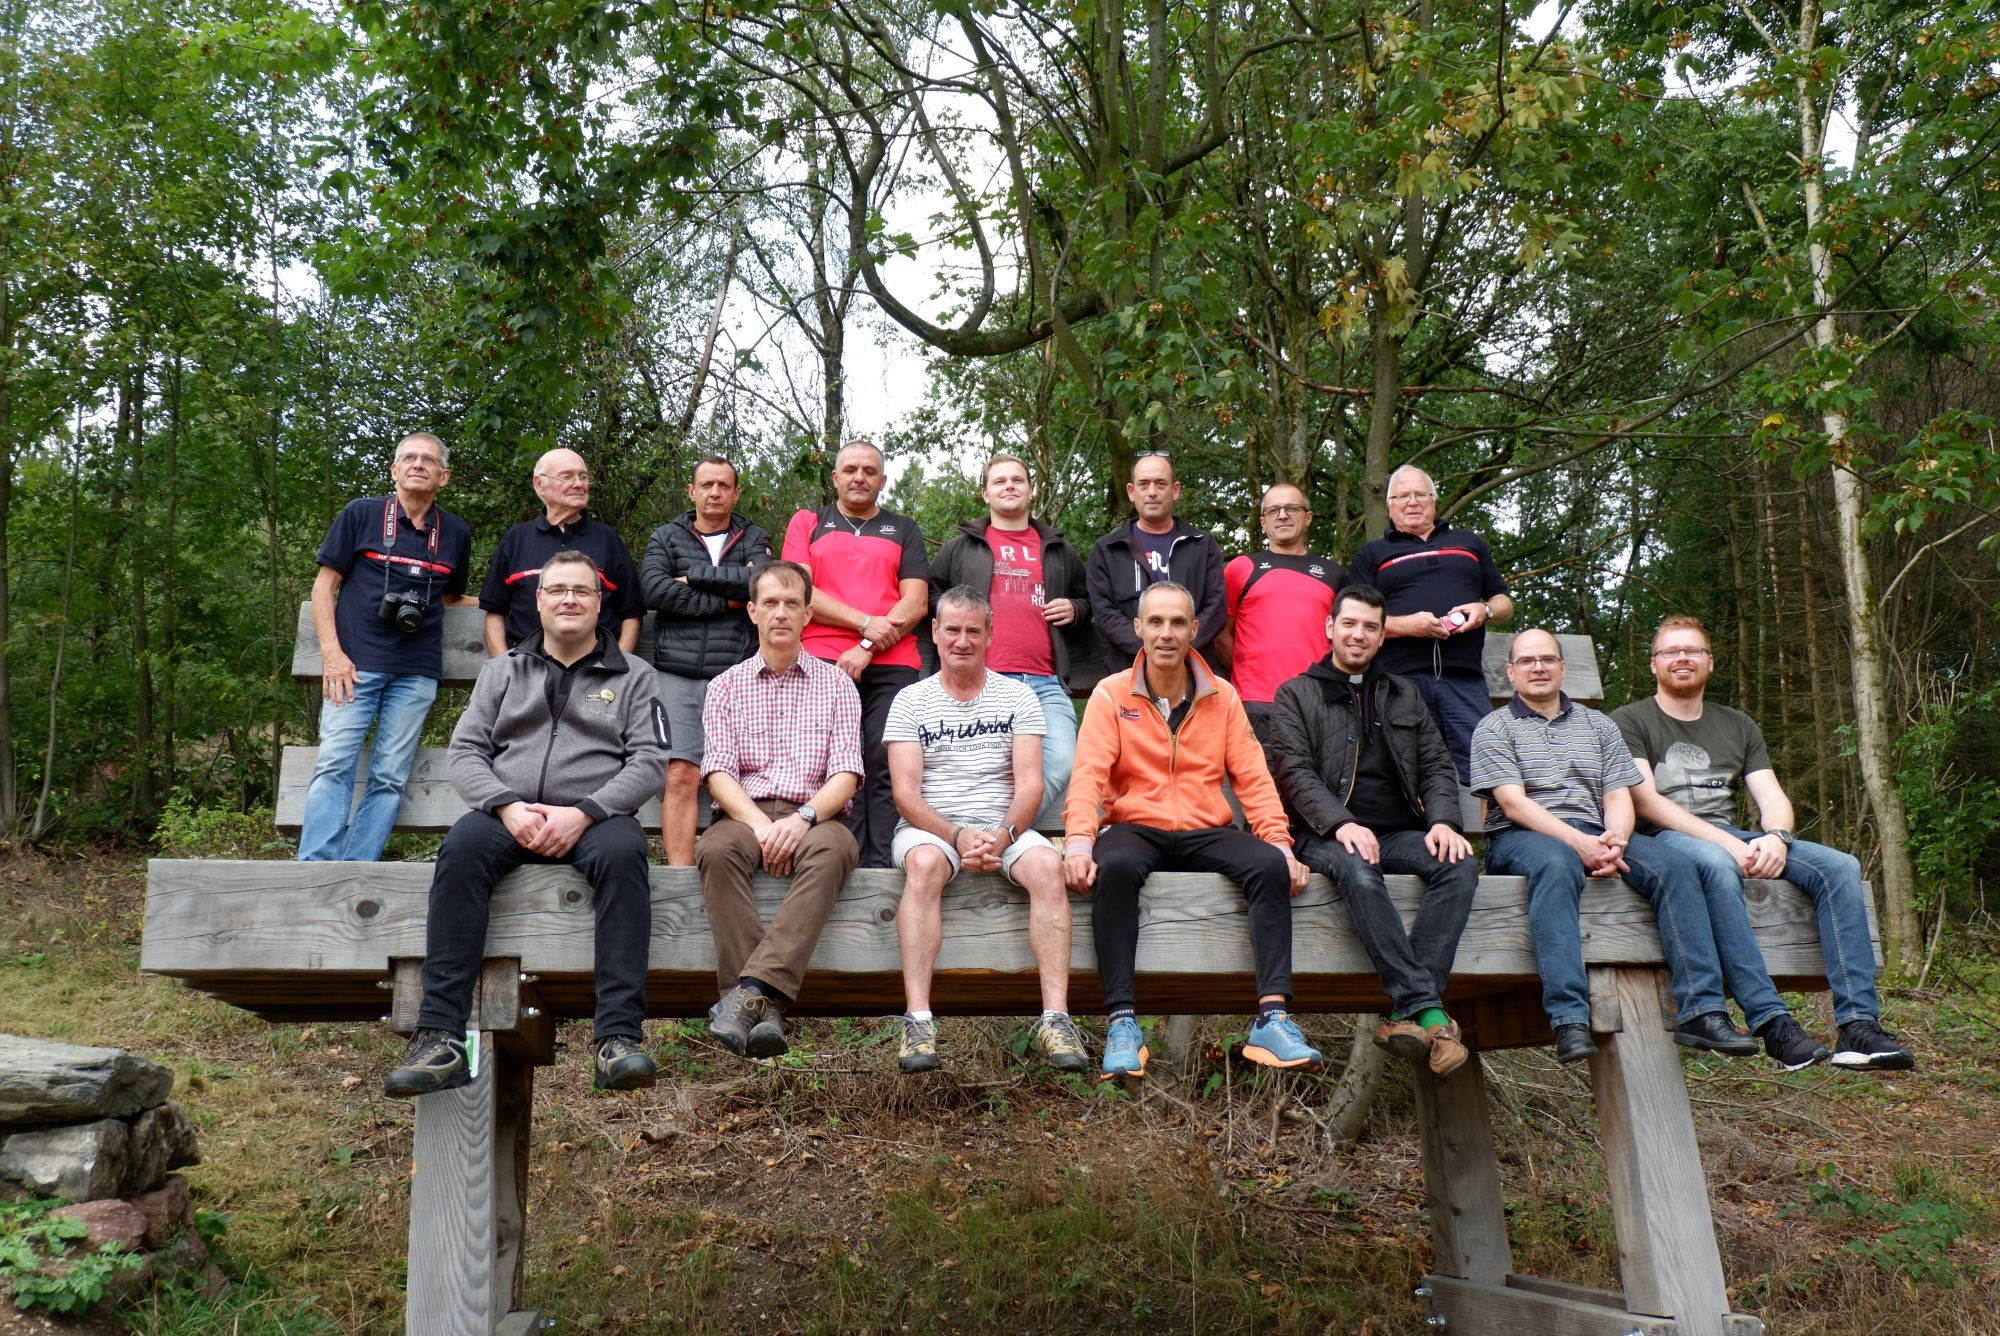 Gruppenfoto auf der XXL Bank in Eversberg / Photo de groupe de la banque XXL à Eversberg